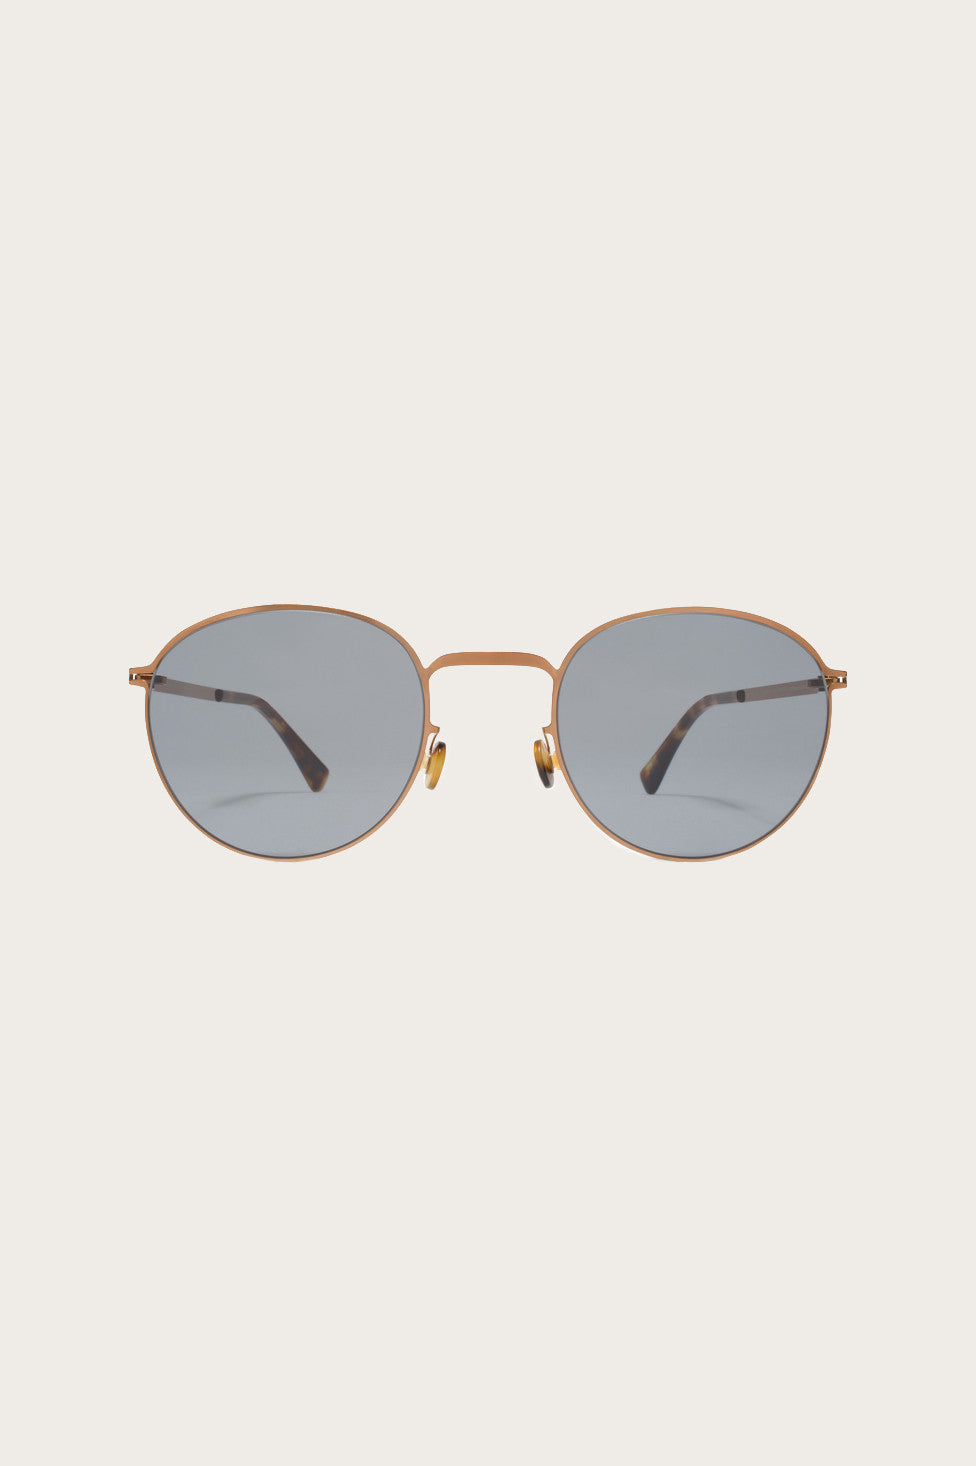 Jonte Sunglasses - Mykita Lite Sun- Shiny Copper